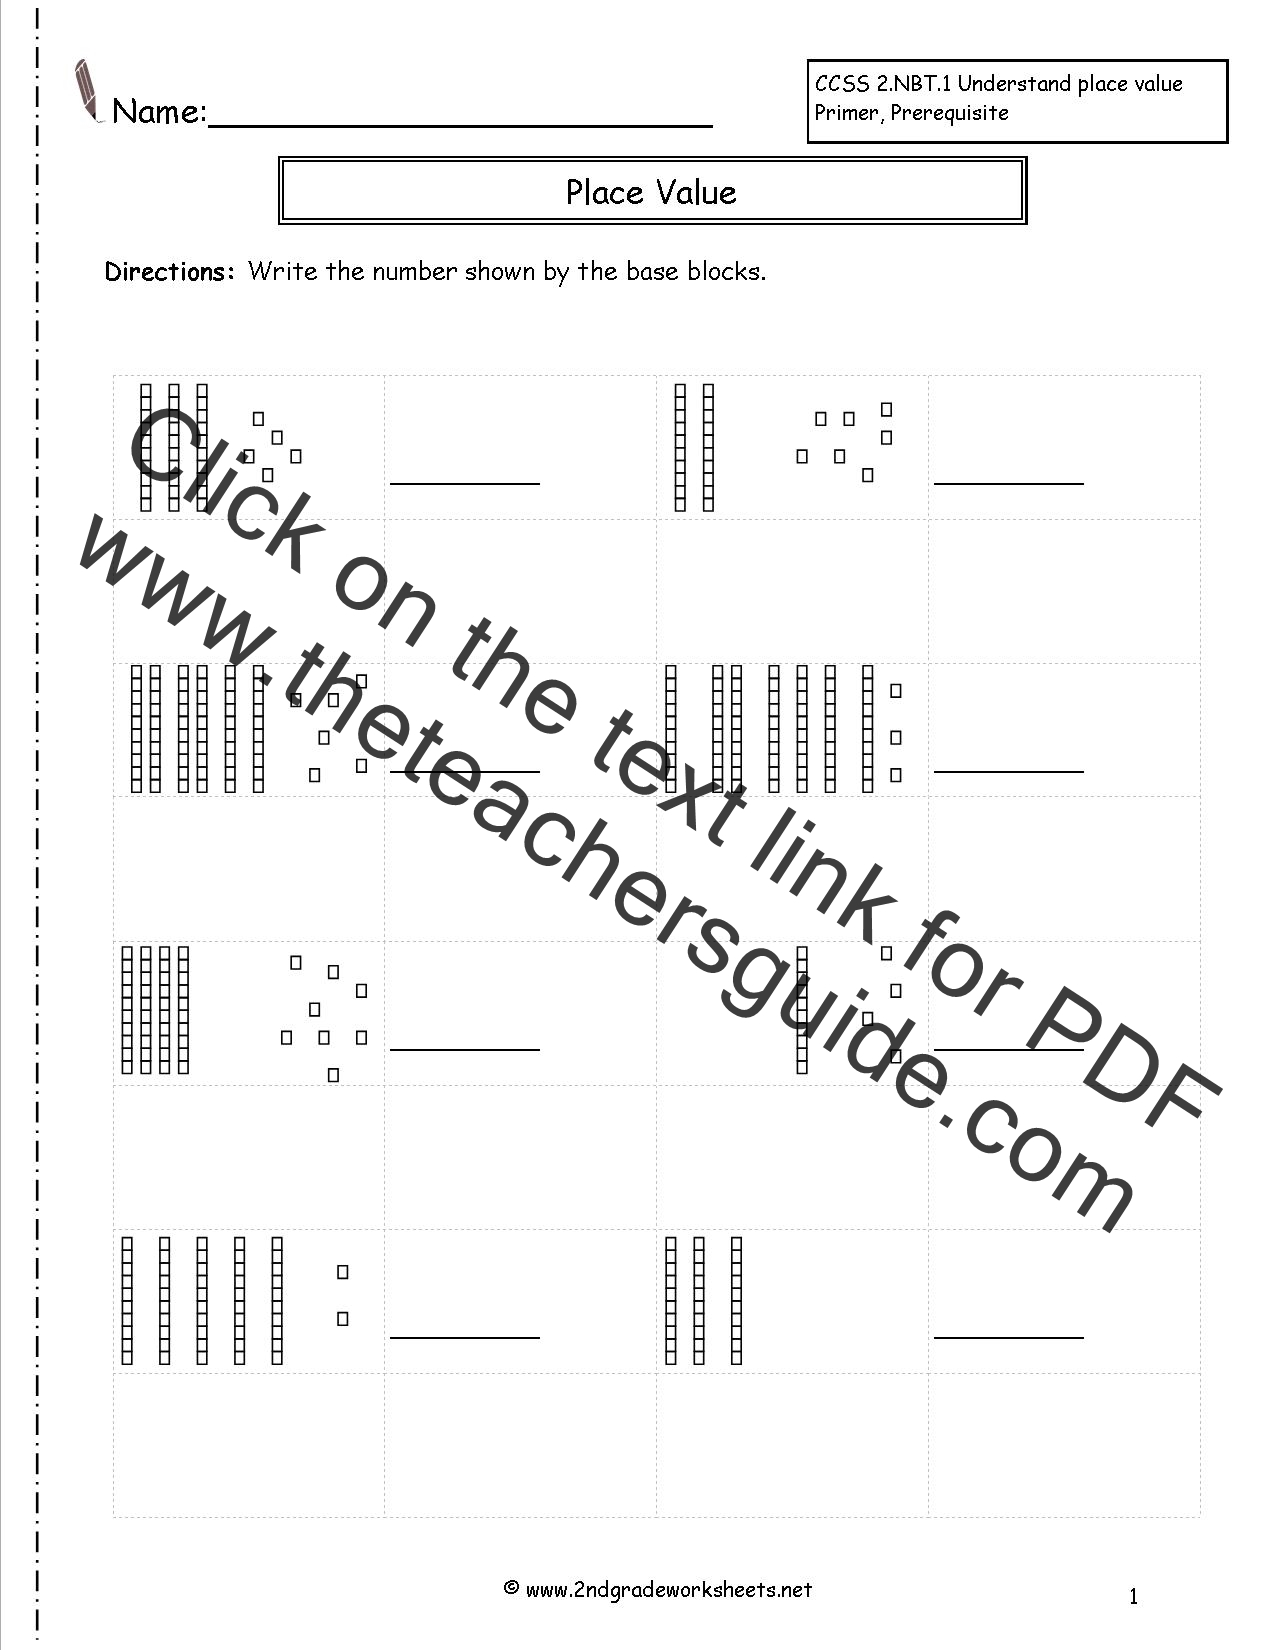 Second Grade Place Value Worksheets – Place Value Worksheets Free